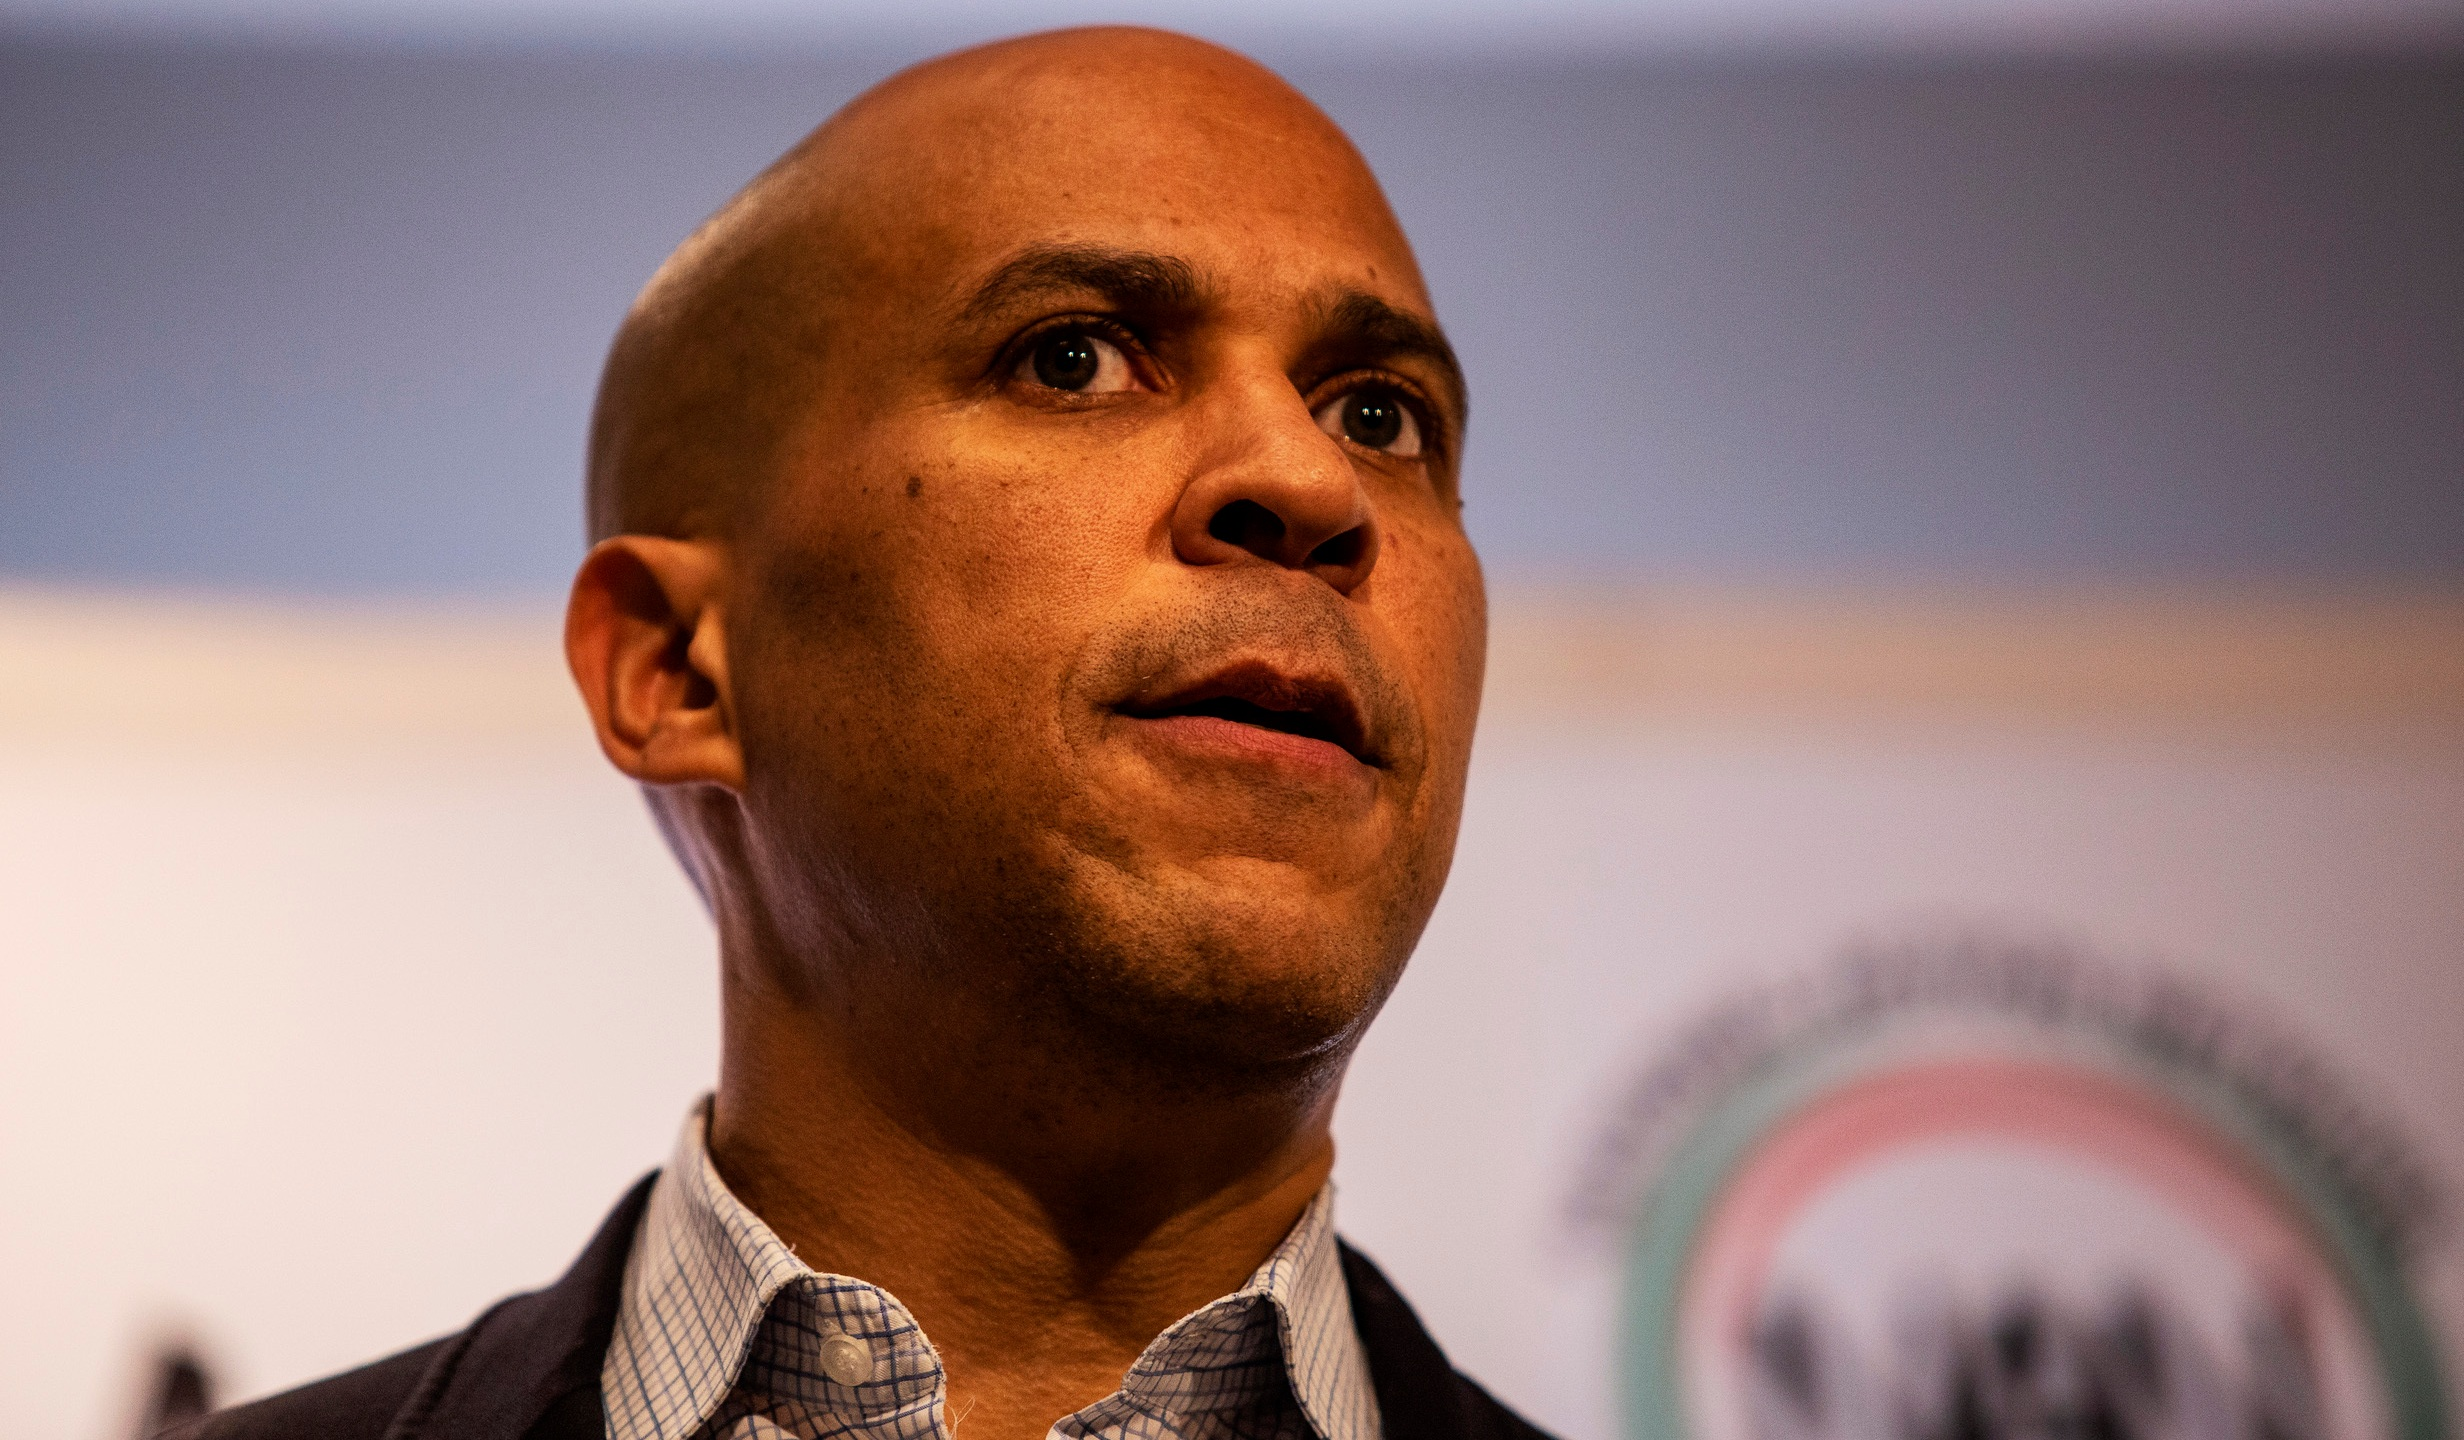 Cory Booker, Booker ingnites audience at Sharpton event in Atlanta